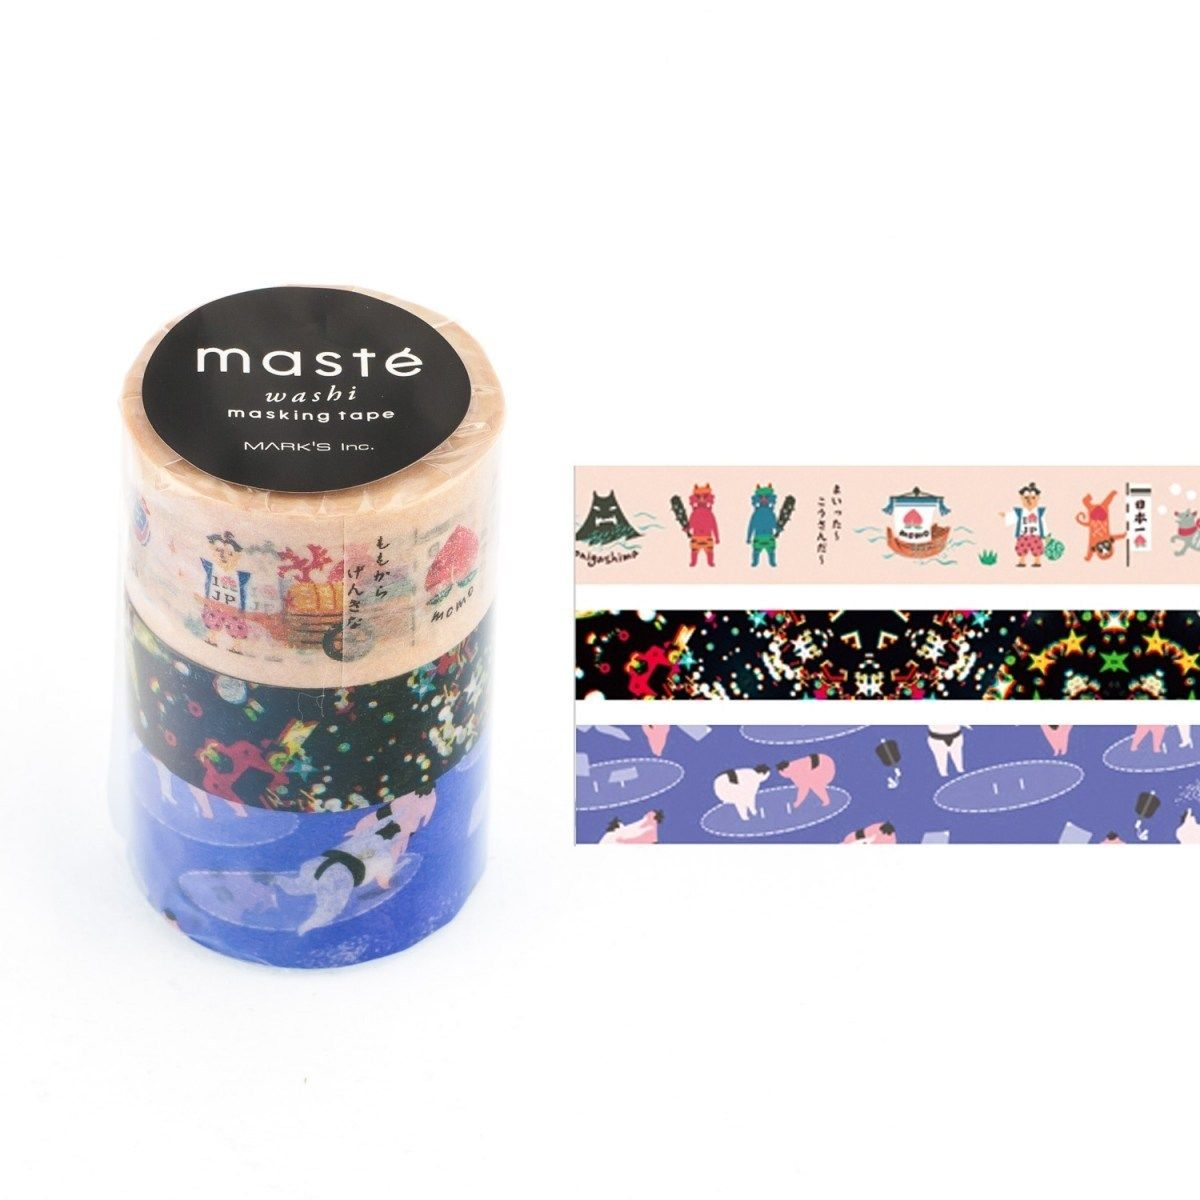 WASHI TAPE MASTÉ JAPAN 2.4 KIT C/ 3